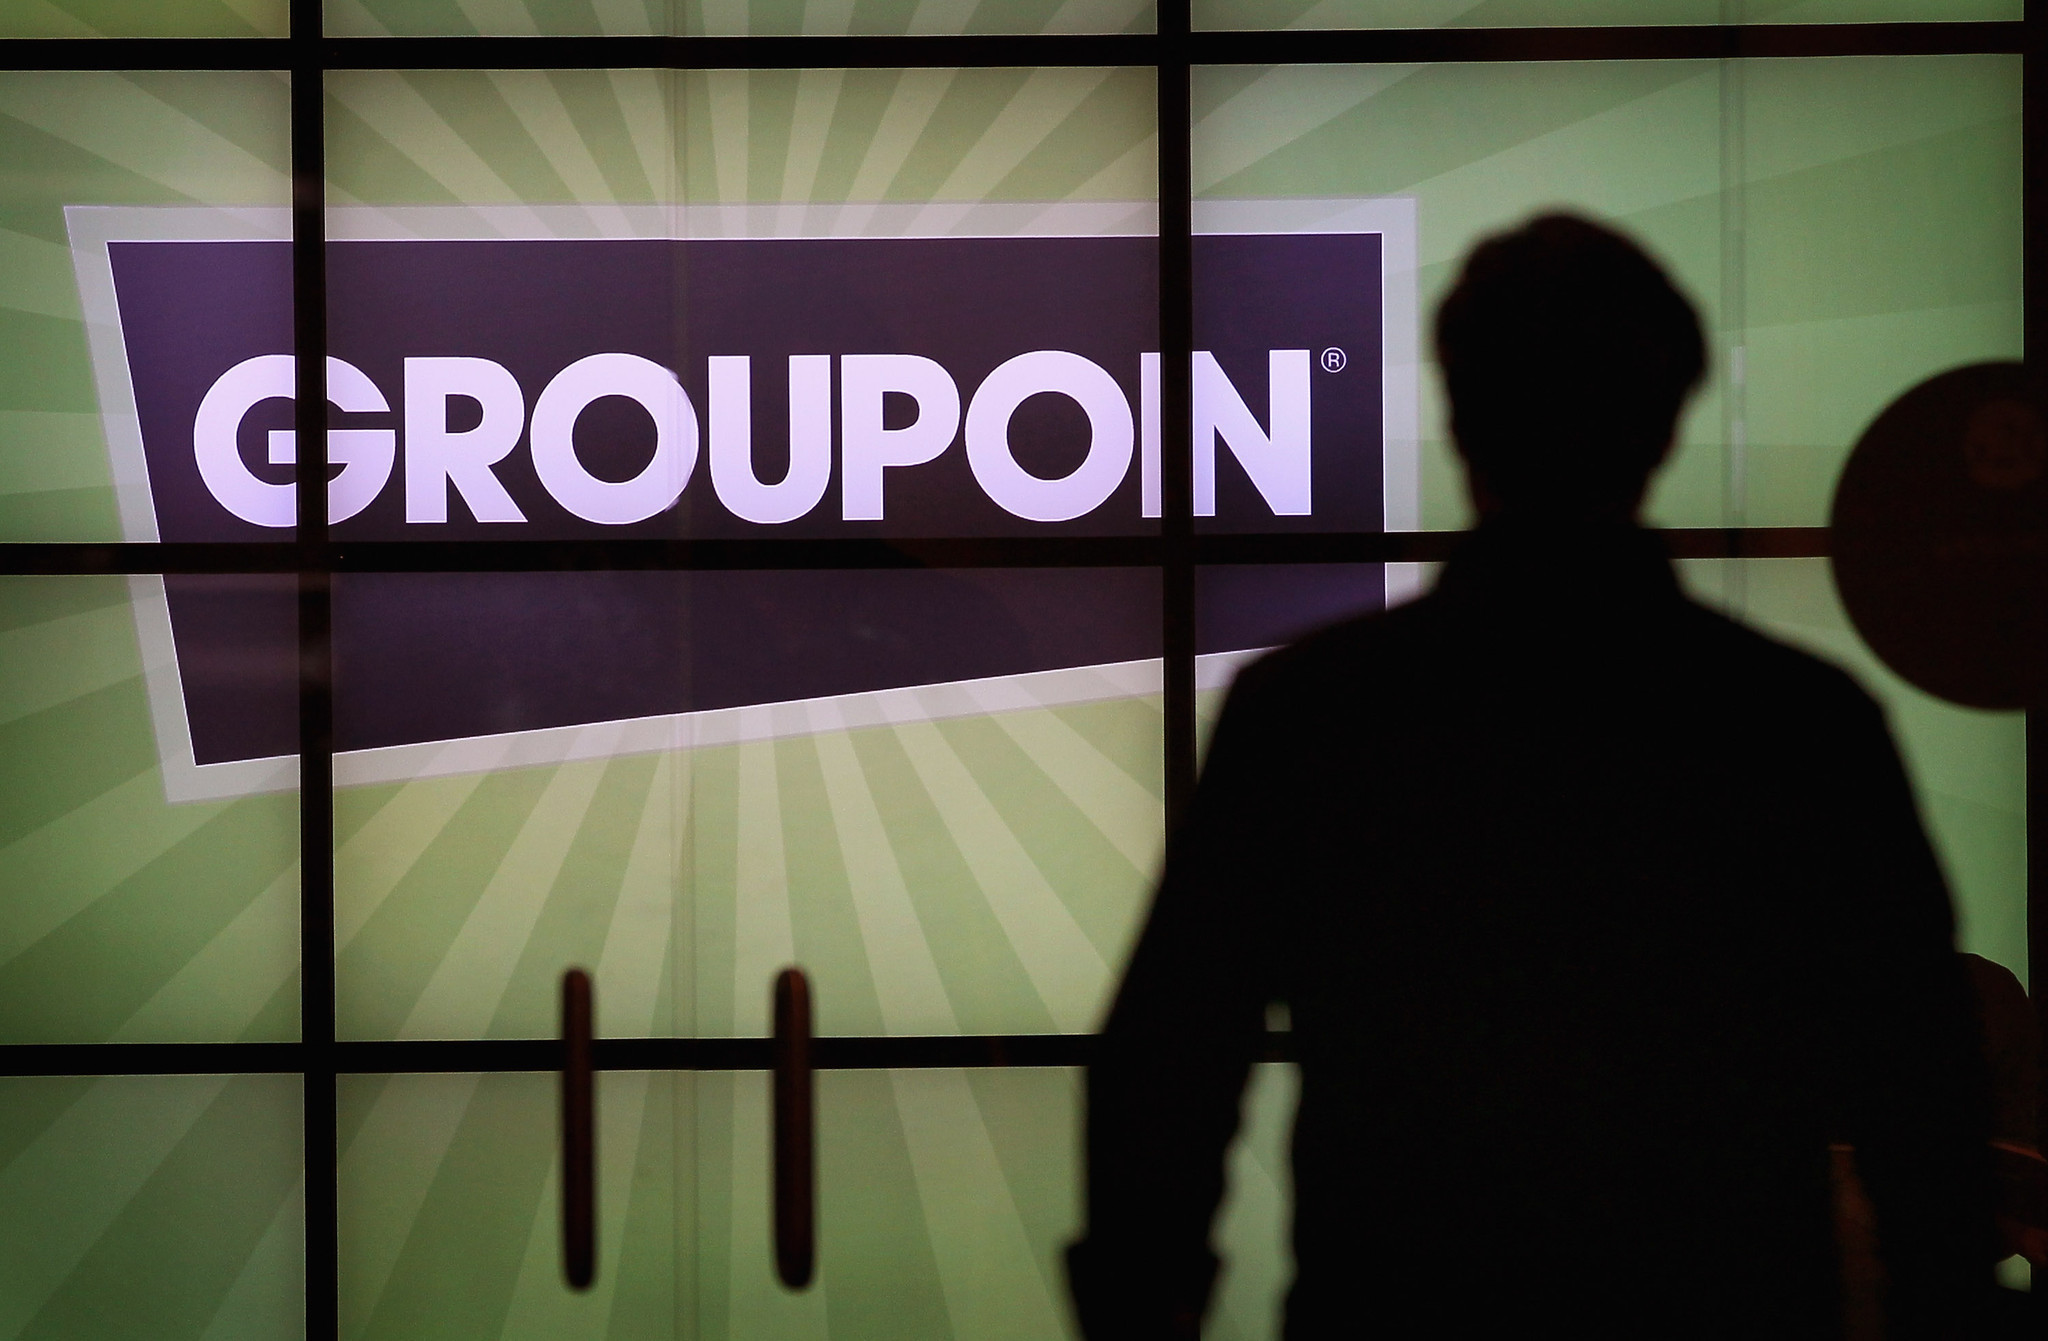 groupon ordered to turn over data after complaint by black job seeker chicago tribune